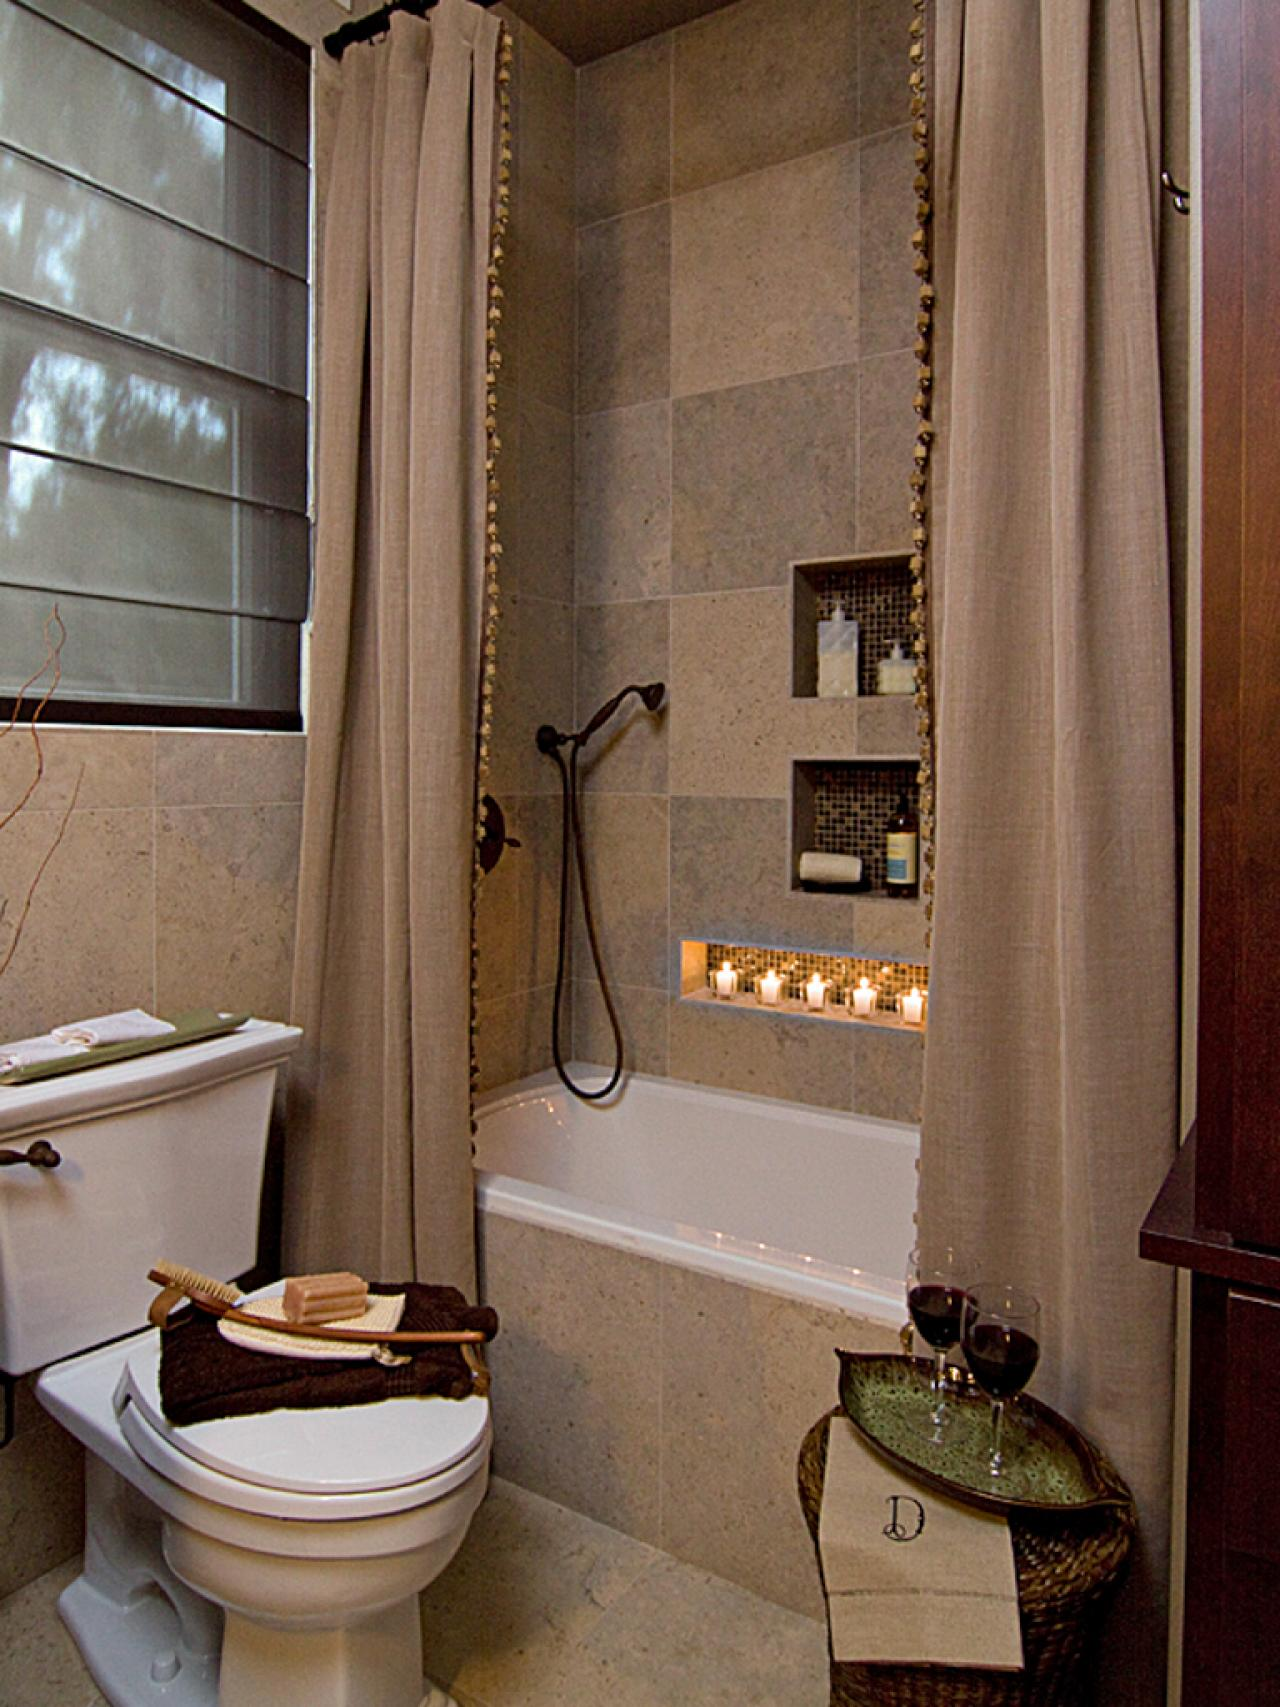 Small bathroom decorating ideas bathroom ideas designs Small bathroom design ideas with shower